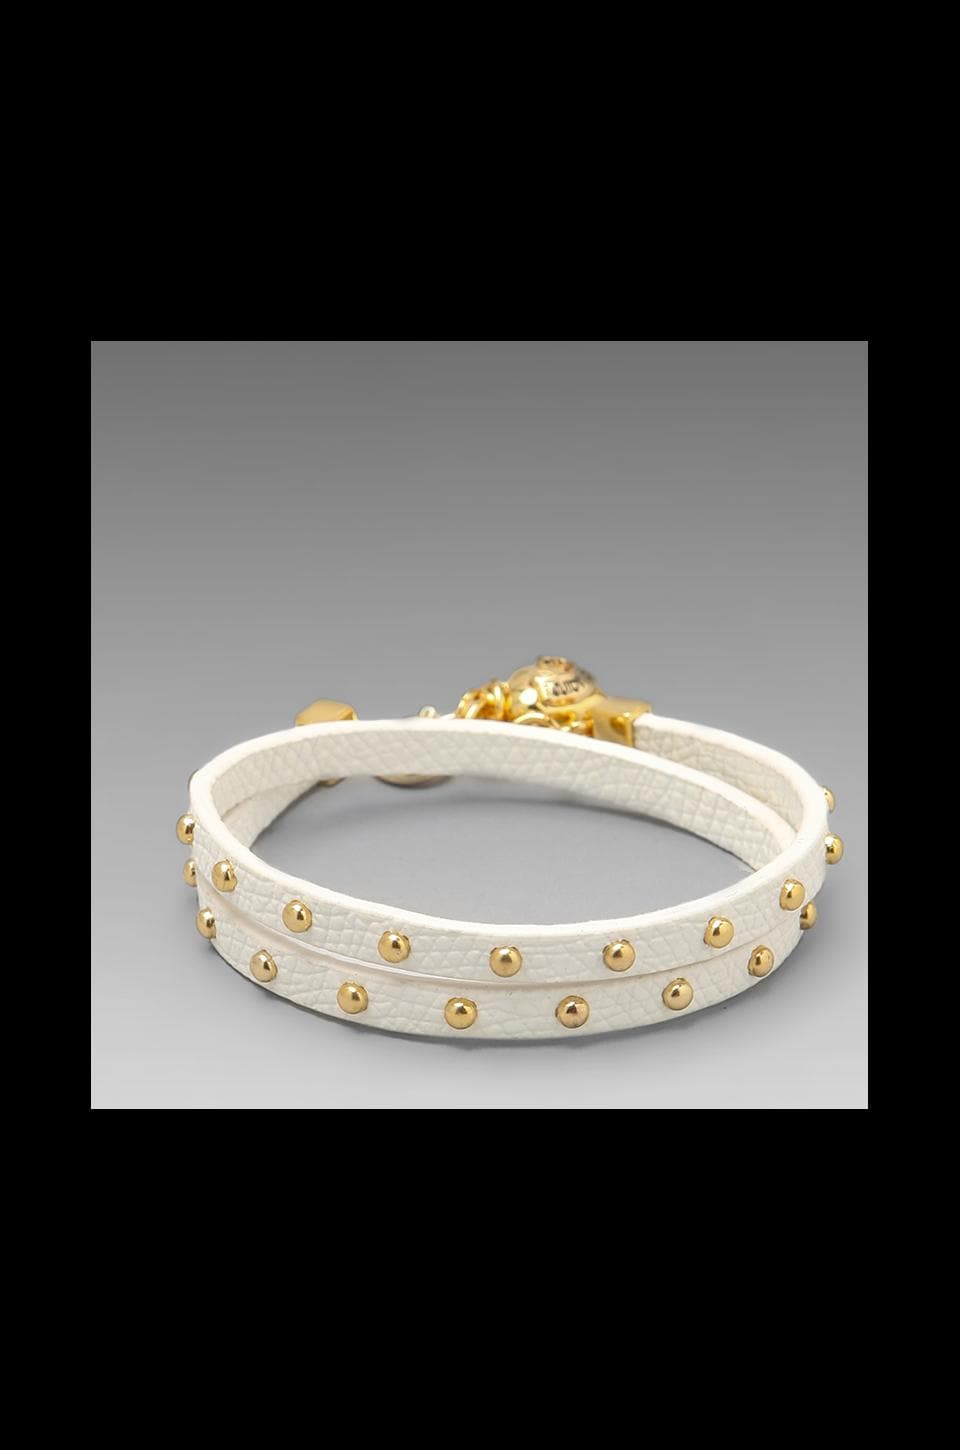 Juicy Couture Double Wrap Leather Bracelet in White